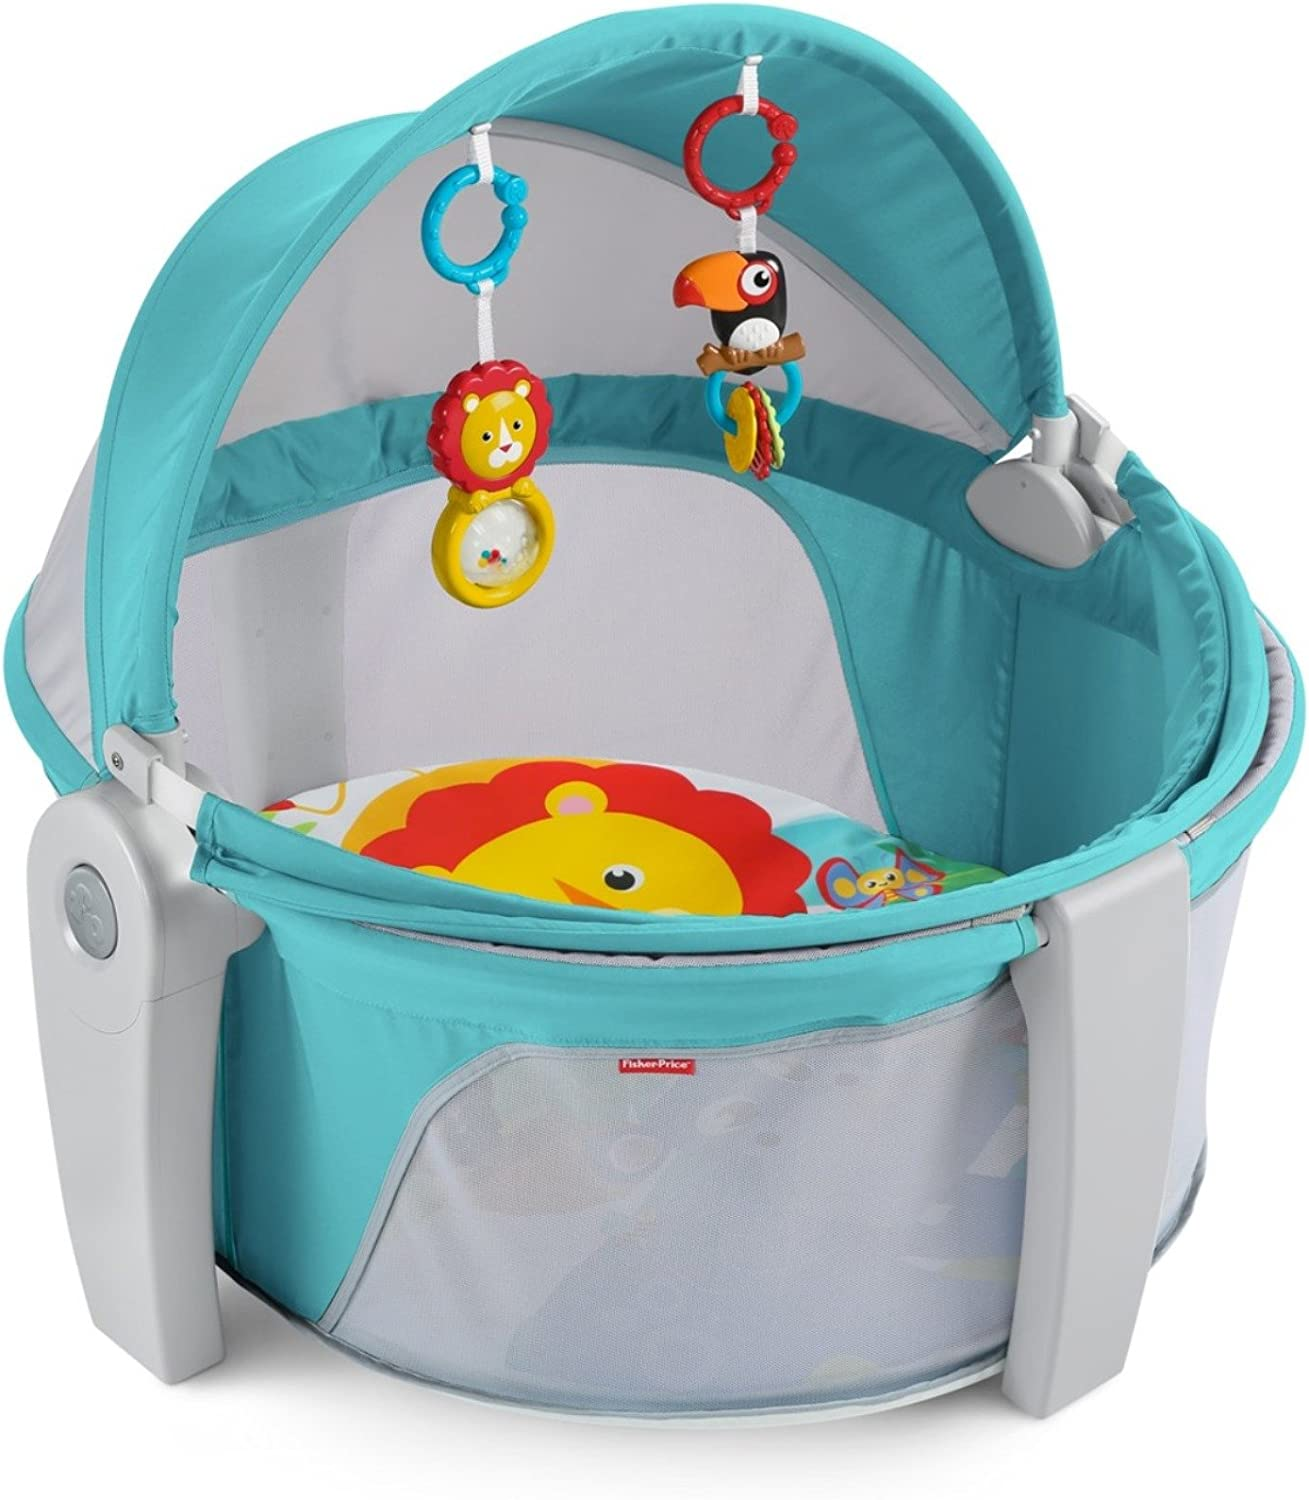 Fisher-Price On-the-Go Baby Dome, Jumpin' Jungle